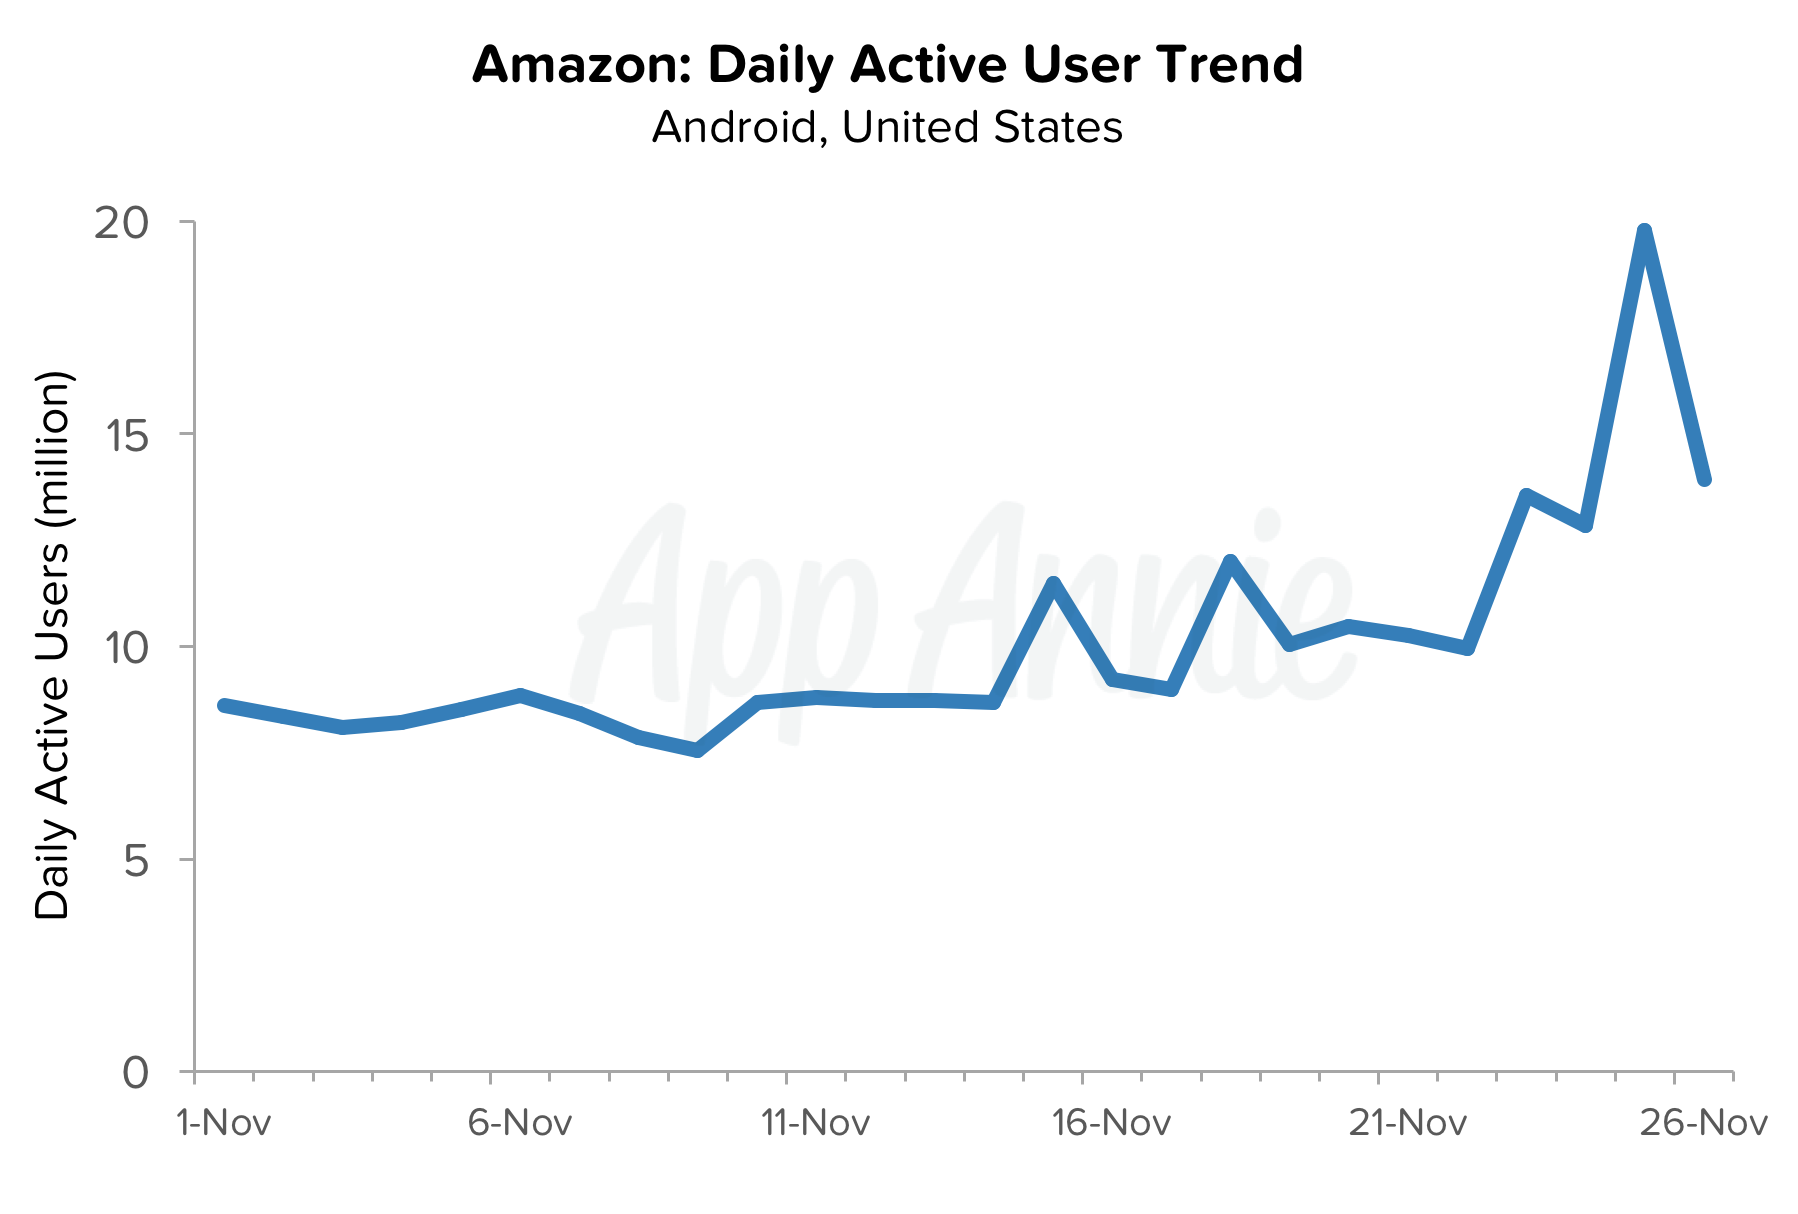 amazon-daily-active-user-trend-app-black-friday